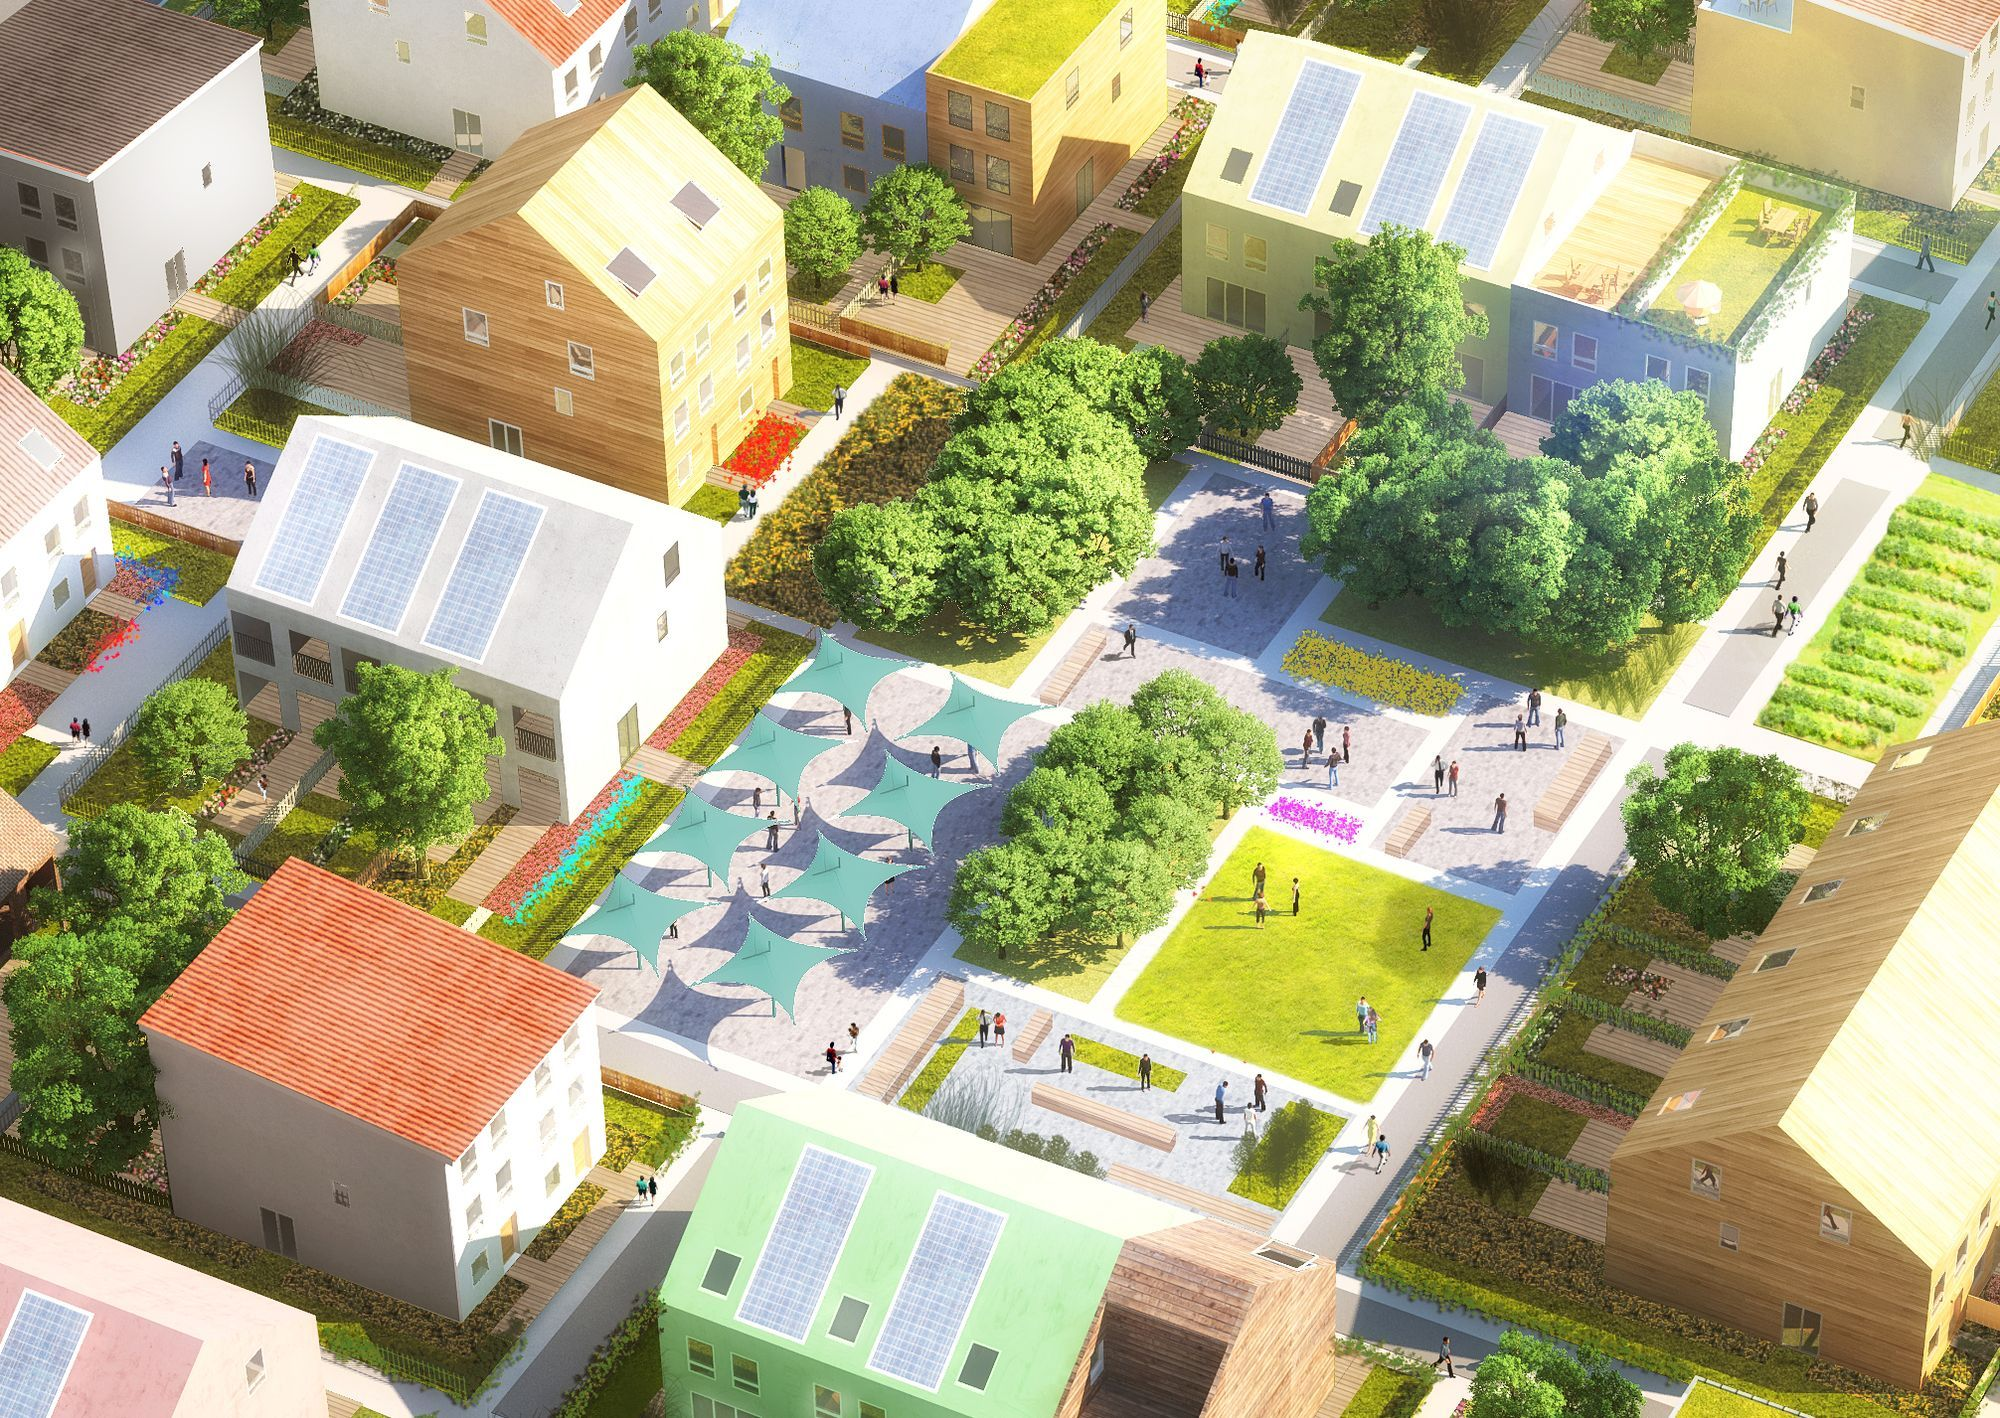 FBAB Future Sustainable Social Housing Residental Kolding Denmark Open petition 2014 1st prize Under construction Client Lejerbo